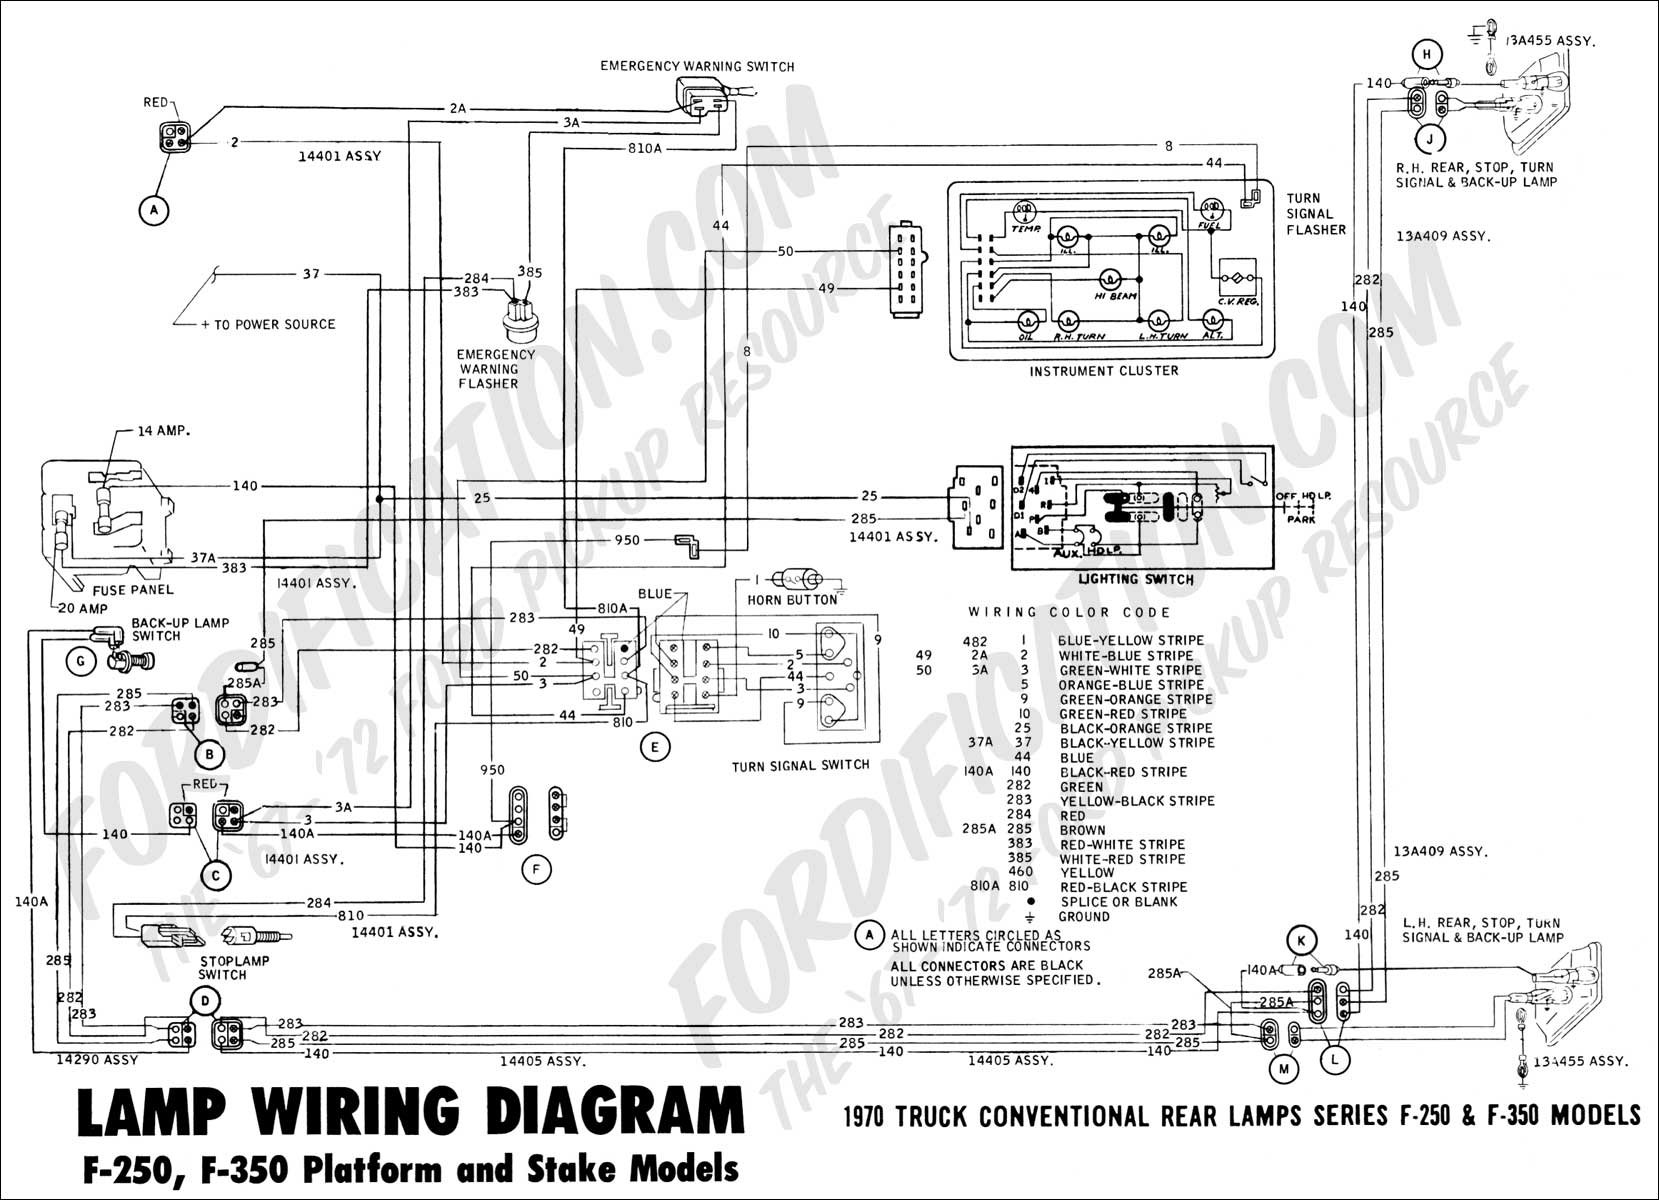 1991 Ford E350 Wiring Diagram Library F 150 Harness Truck Technical Drawings And Schematics Section H E150 Conversion Van 1990 Computer